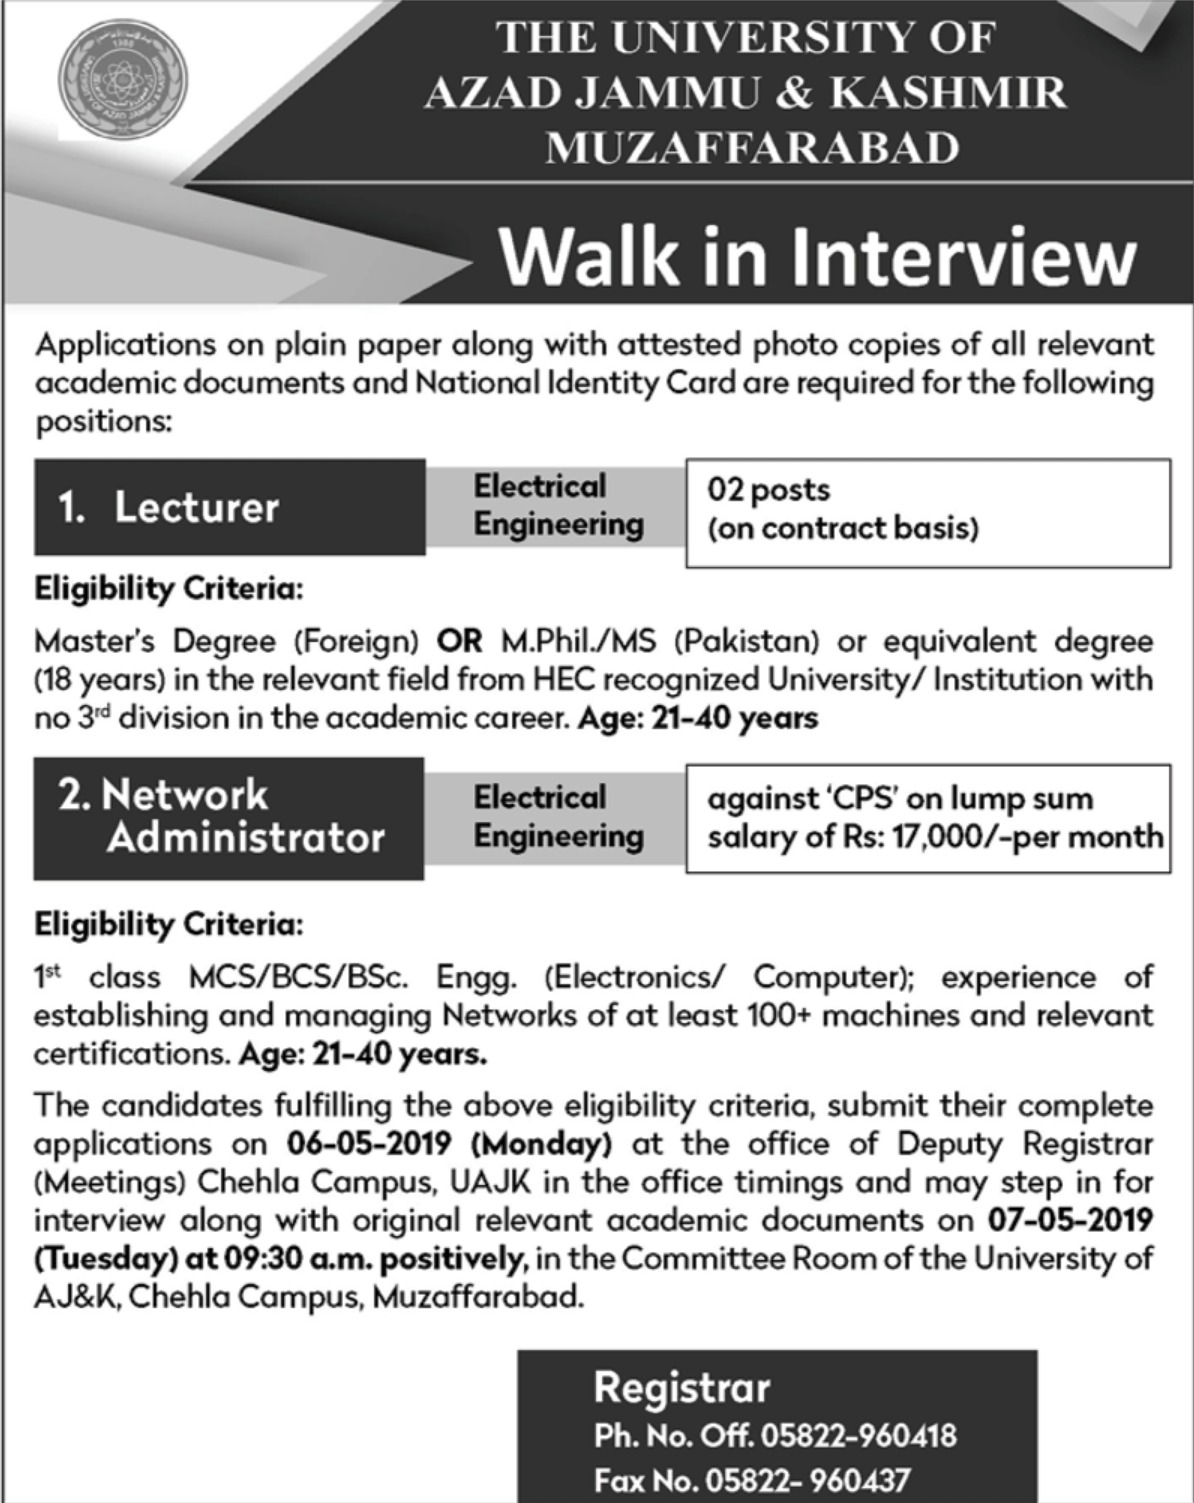 University of Azad Jammu & Kashmir Jobs 2019 AJK Muzaffarabad Latest